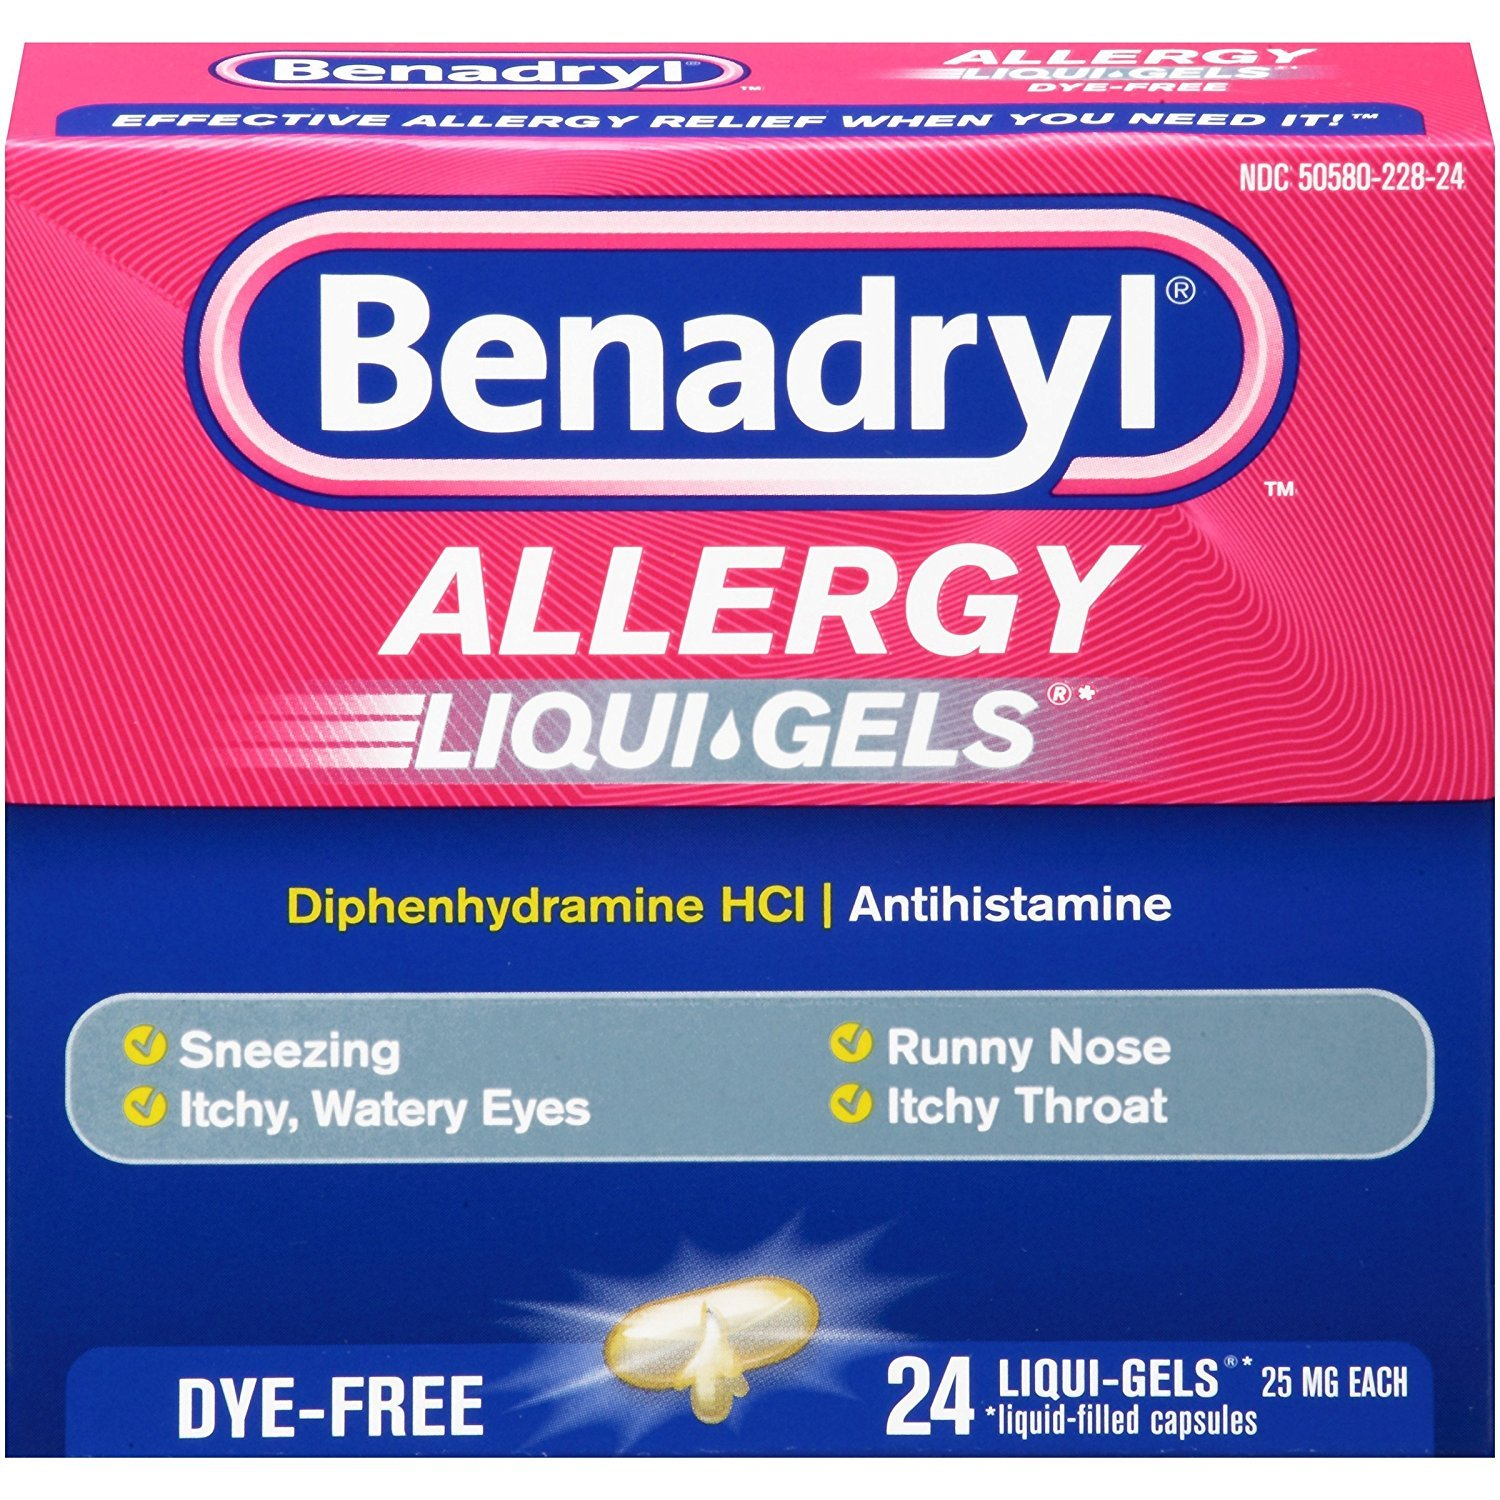 Benadryl Antihistamine Allergy Medicine & Cold Relief, Dye-Free LIQUI-GELS Tablets, Liquid Gels, 24 Count - Pack of 6 by Benadryl